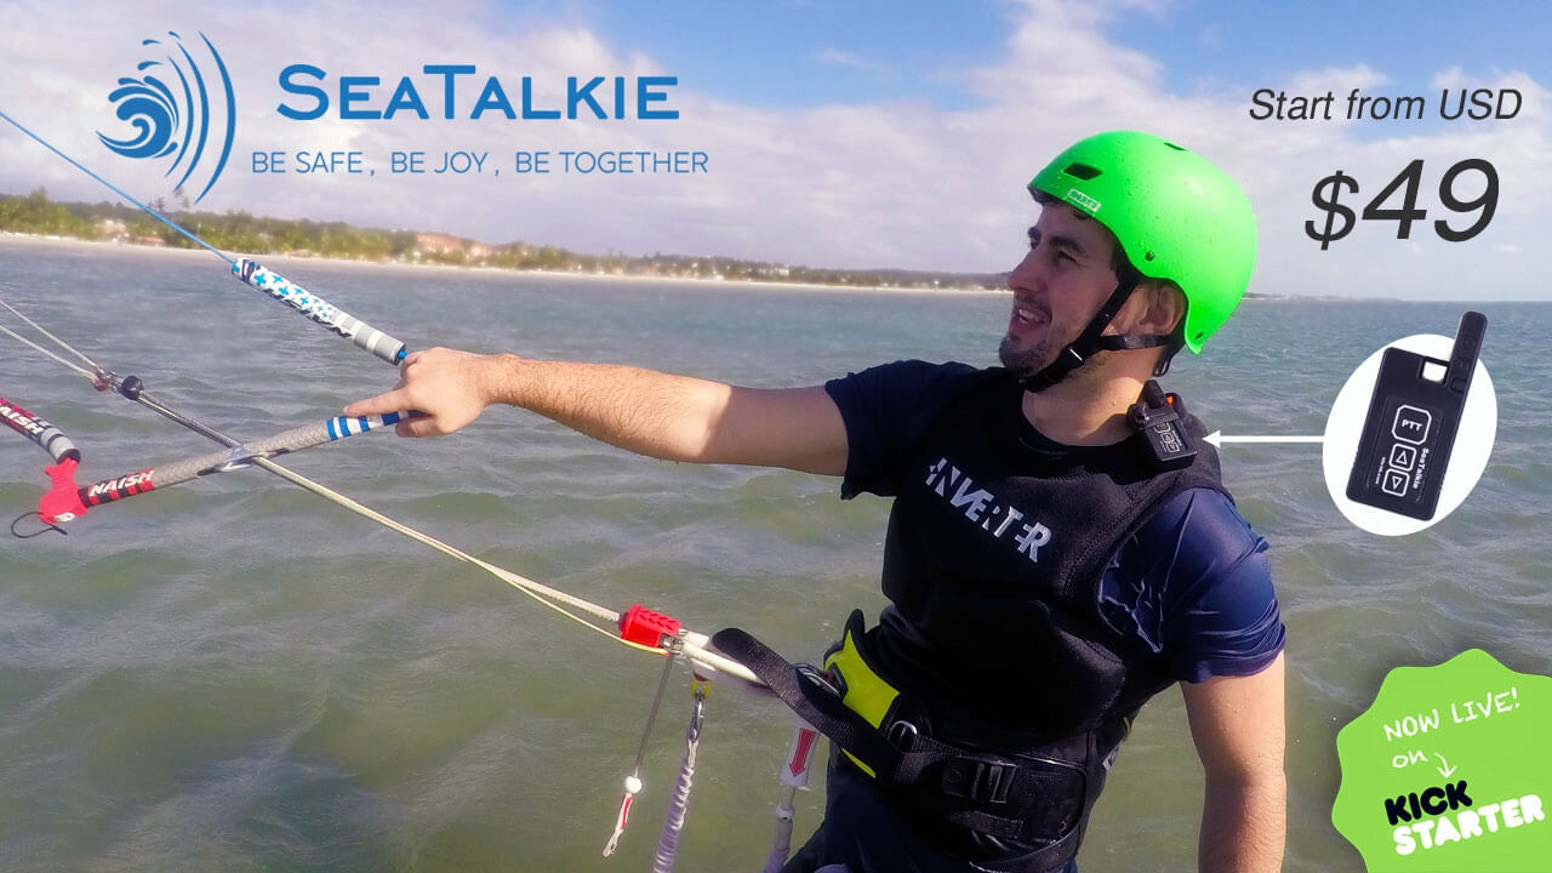 SeaTalkie is an innovative waterproof walkie talkie designed for water sports.  Especially for CHILDREN playing at crowded beaches.